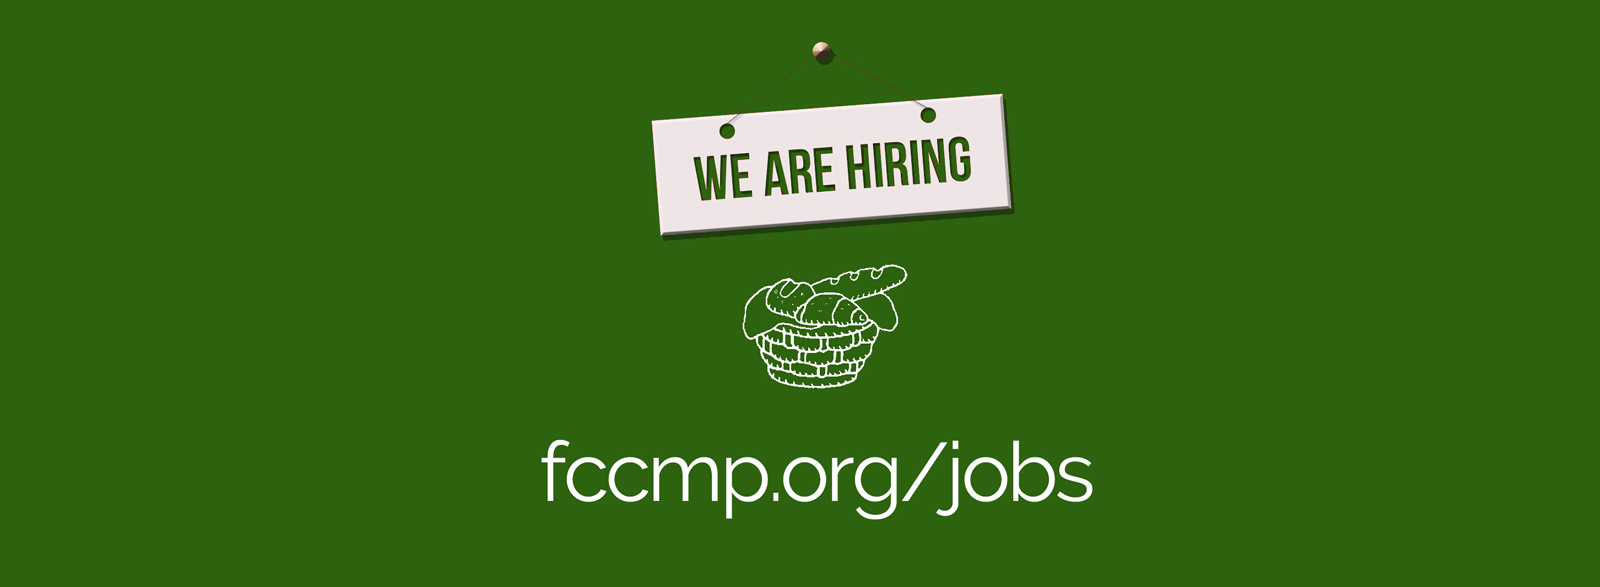 FCCMP is hiring - job posts hours wages